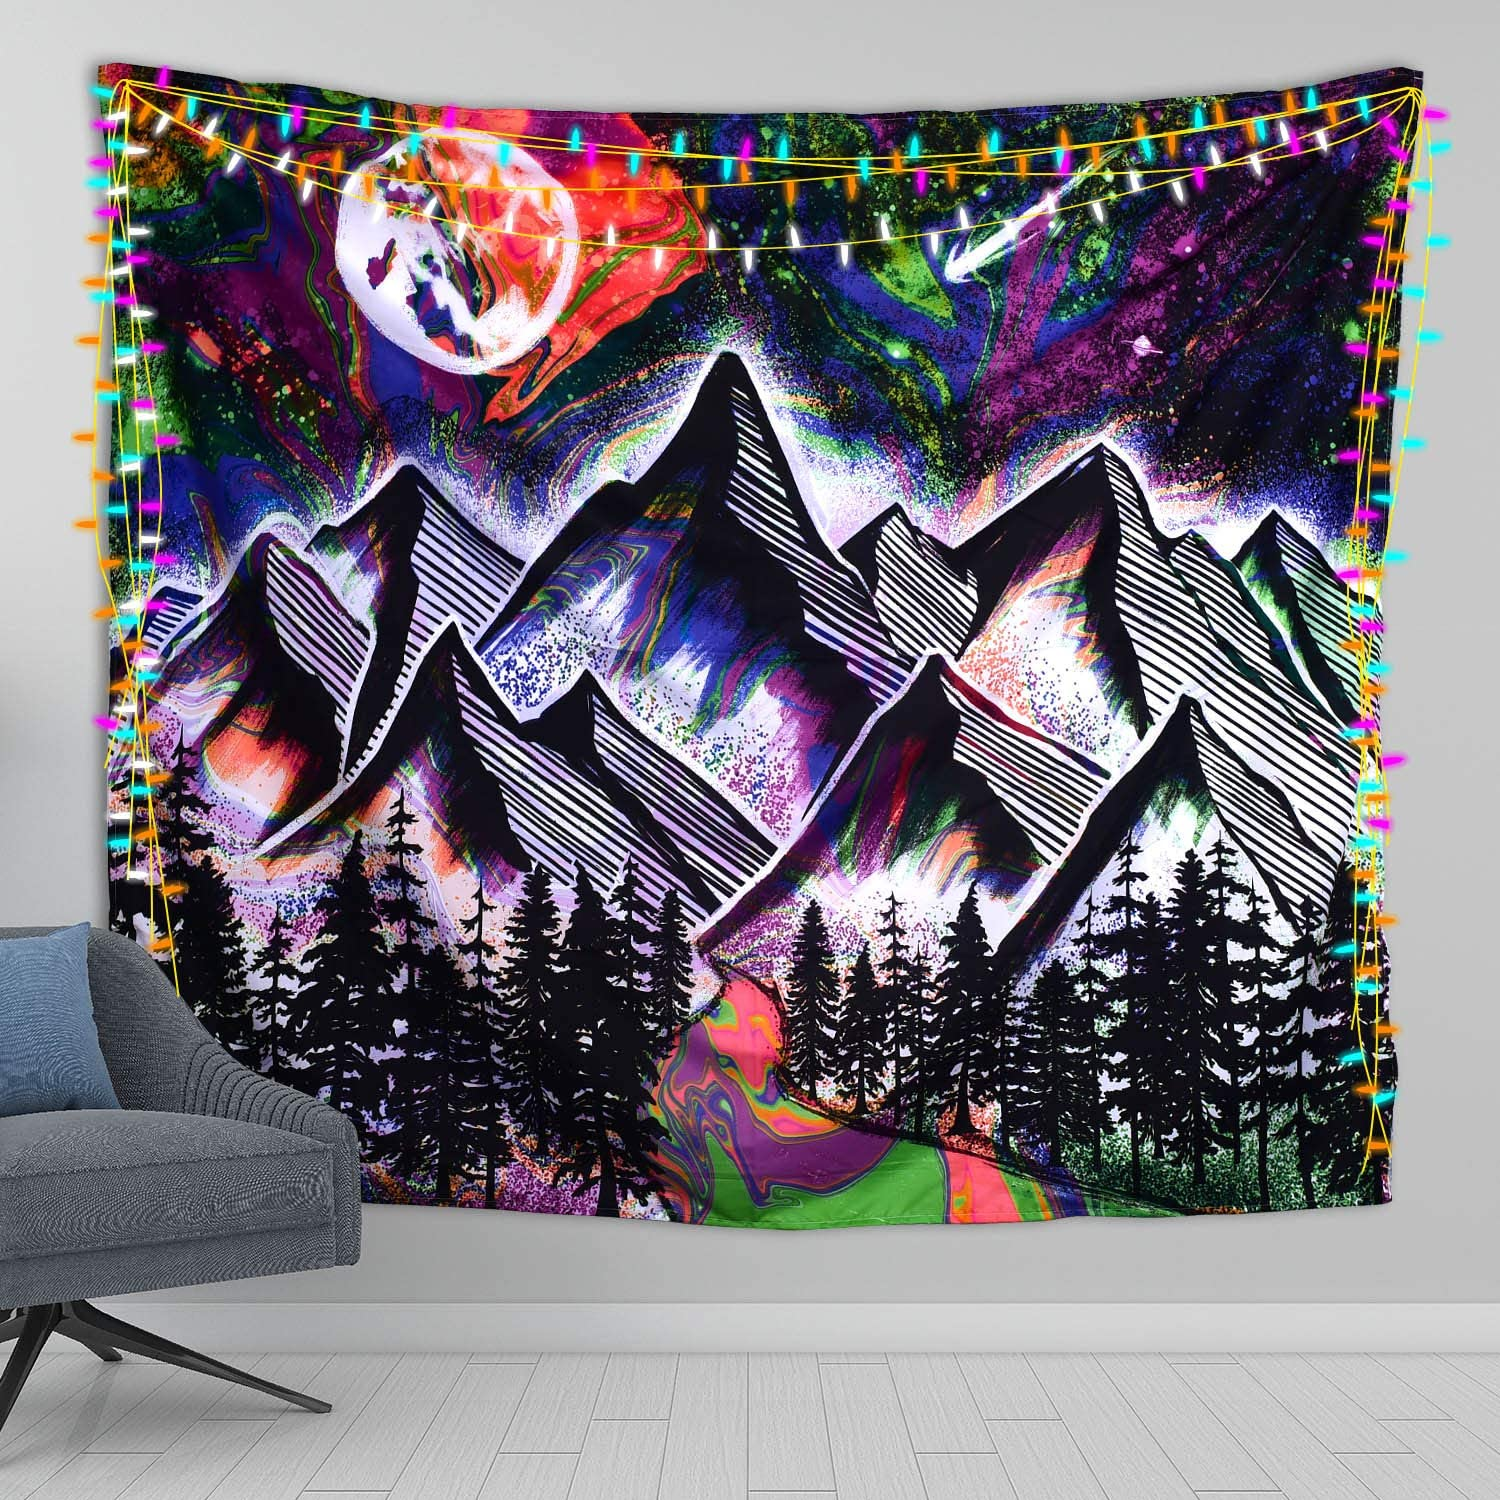 Jamefy Trippy Tapestry Psychedelic Mountain Tapestry Hippie Decor Tie Dye Tapestry Moon Tapestry for Living Room Bedroom Decor Nature Galaxy Tapestry Forest Boho Decor Tapestry Wall Hanging (60x50 Inches)